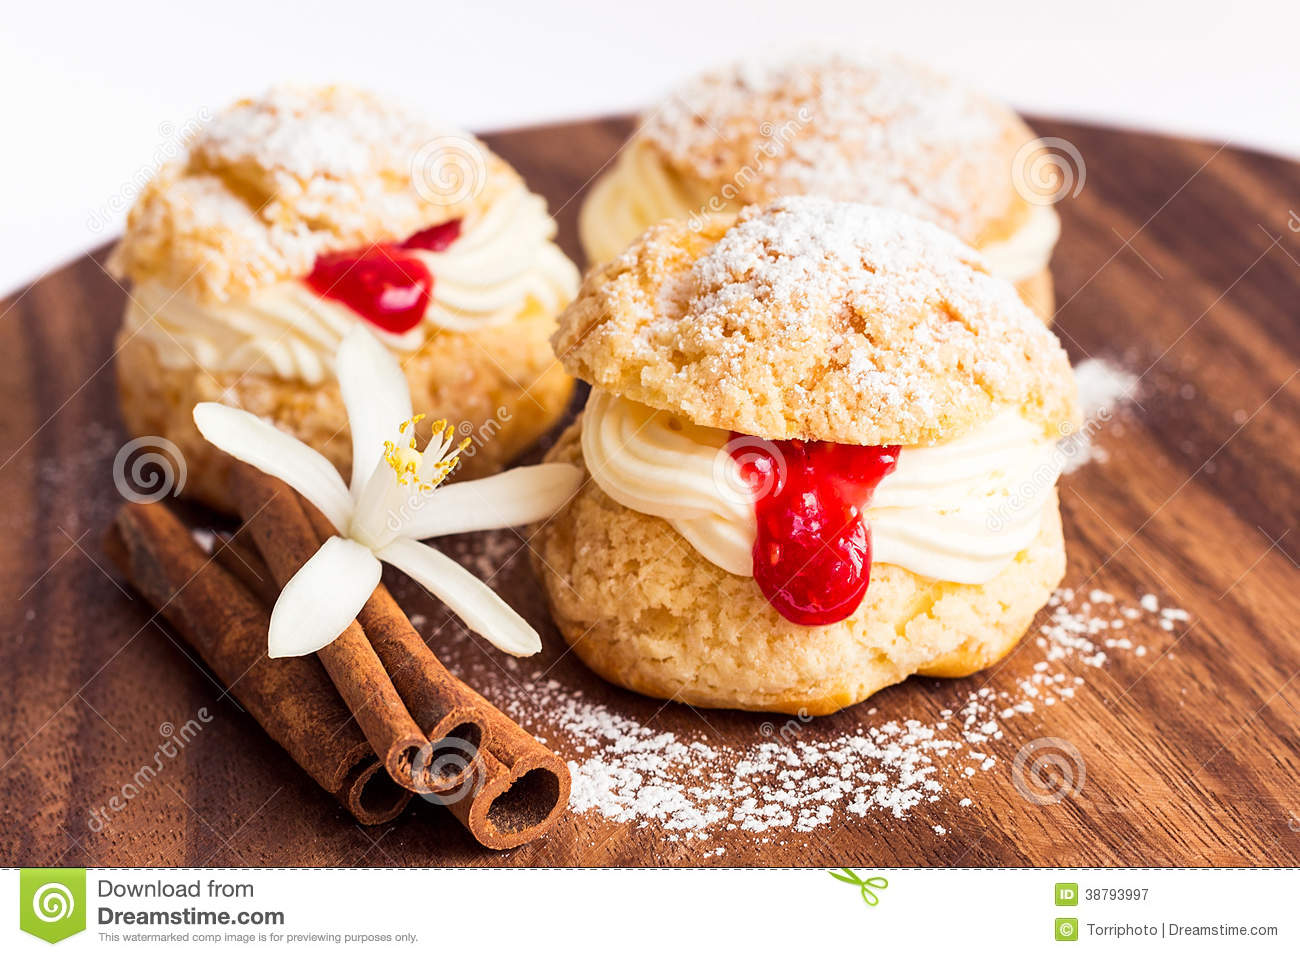 Choux Pastry With Cream And Crimson Curd Stock Photo - Image: 38793997